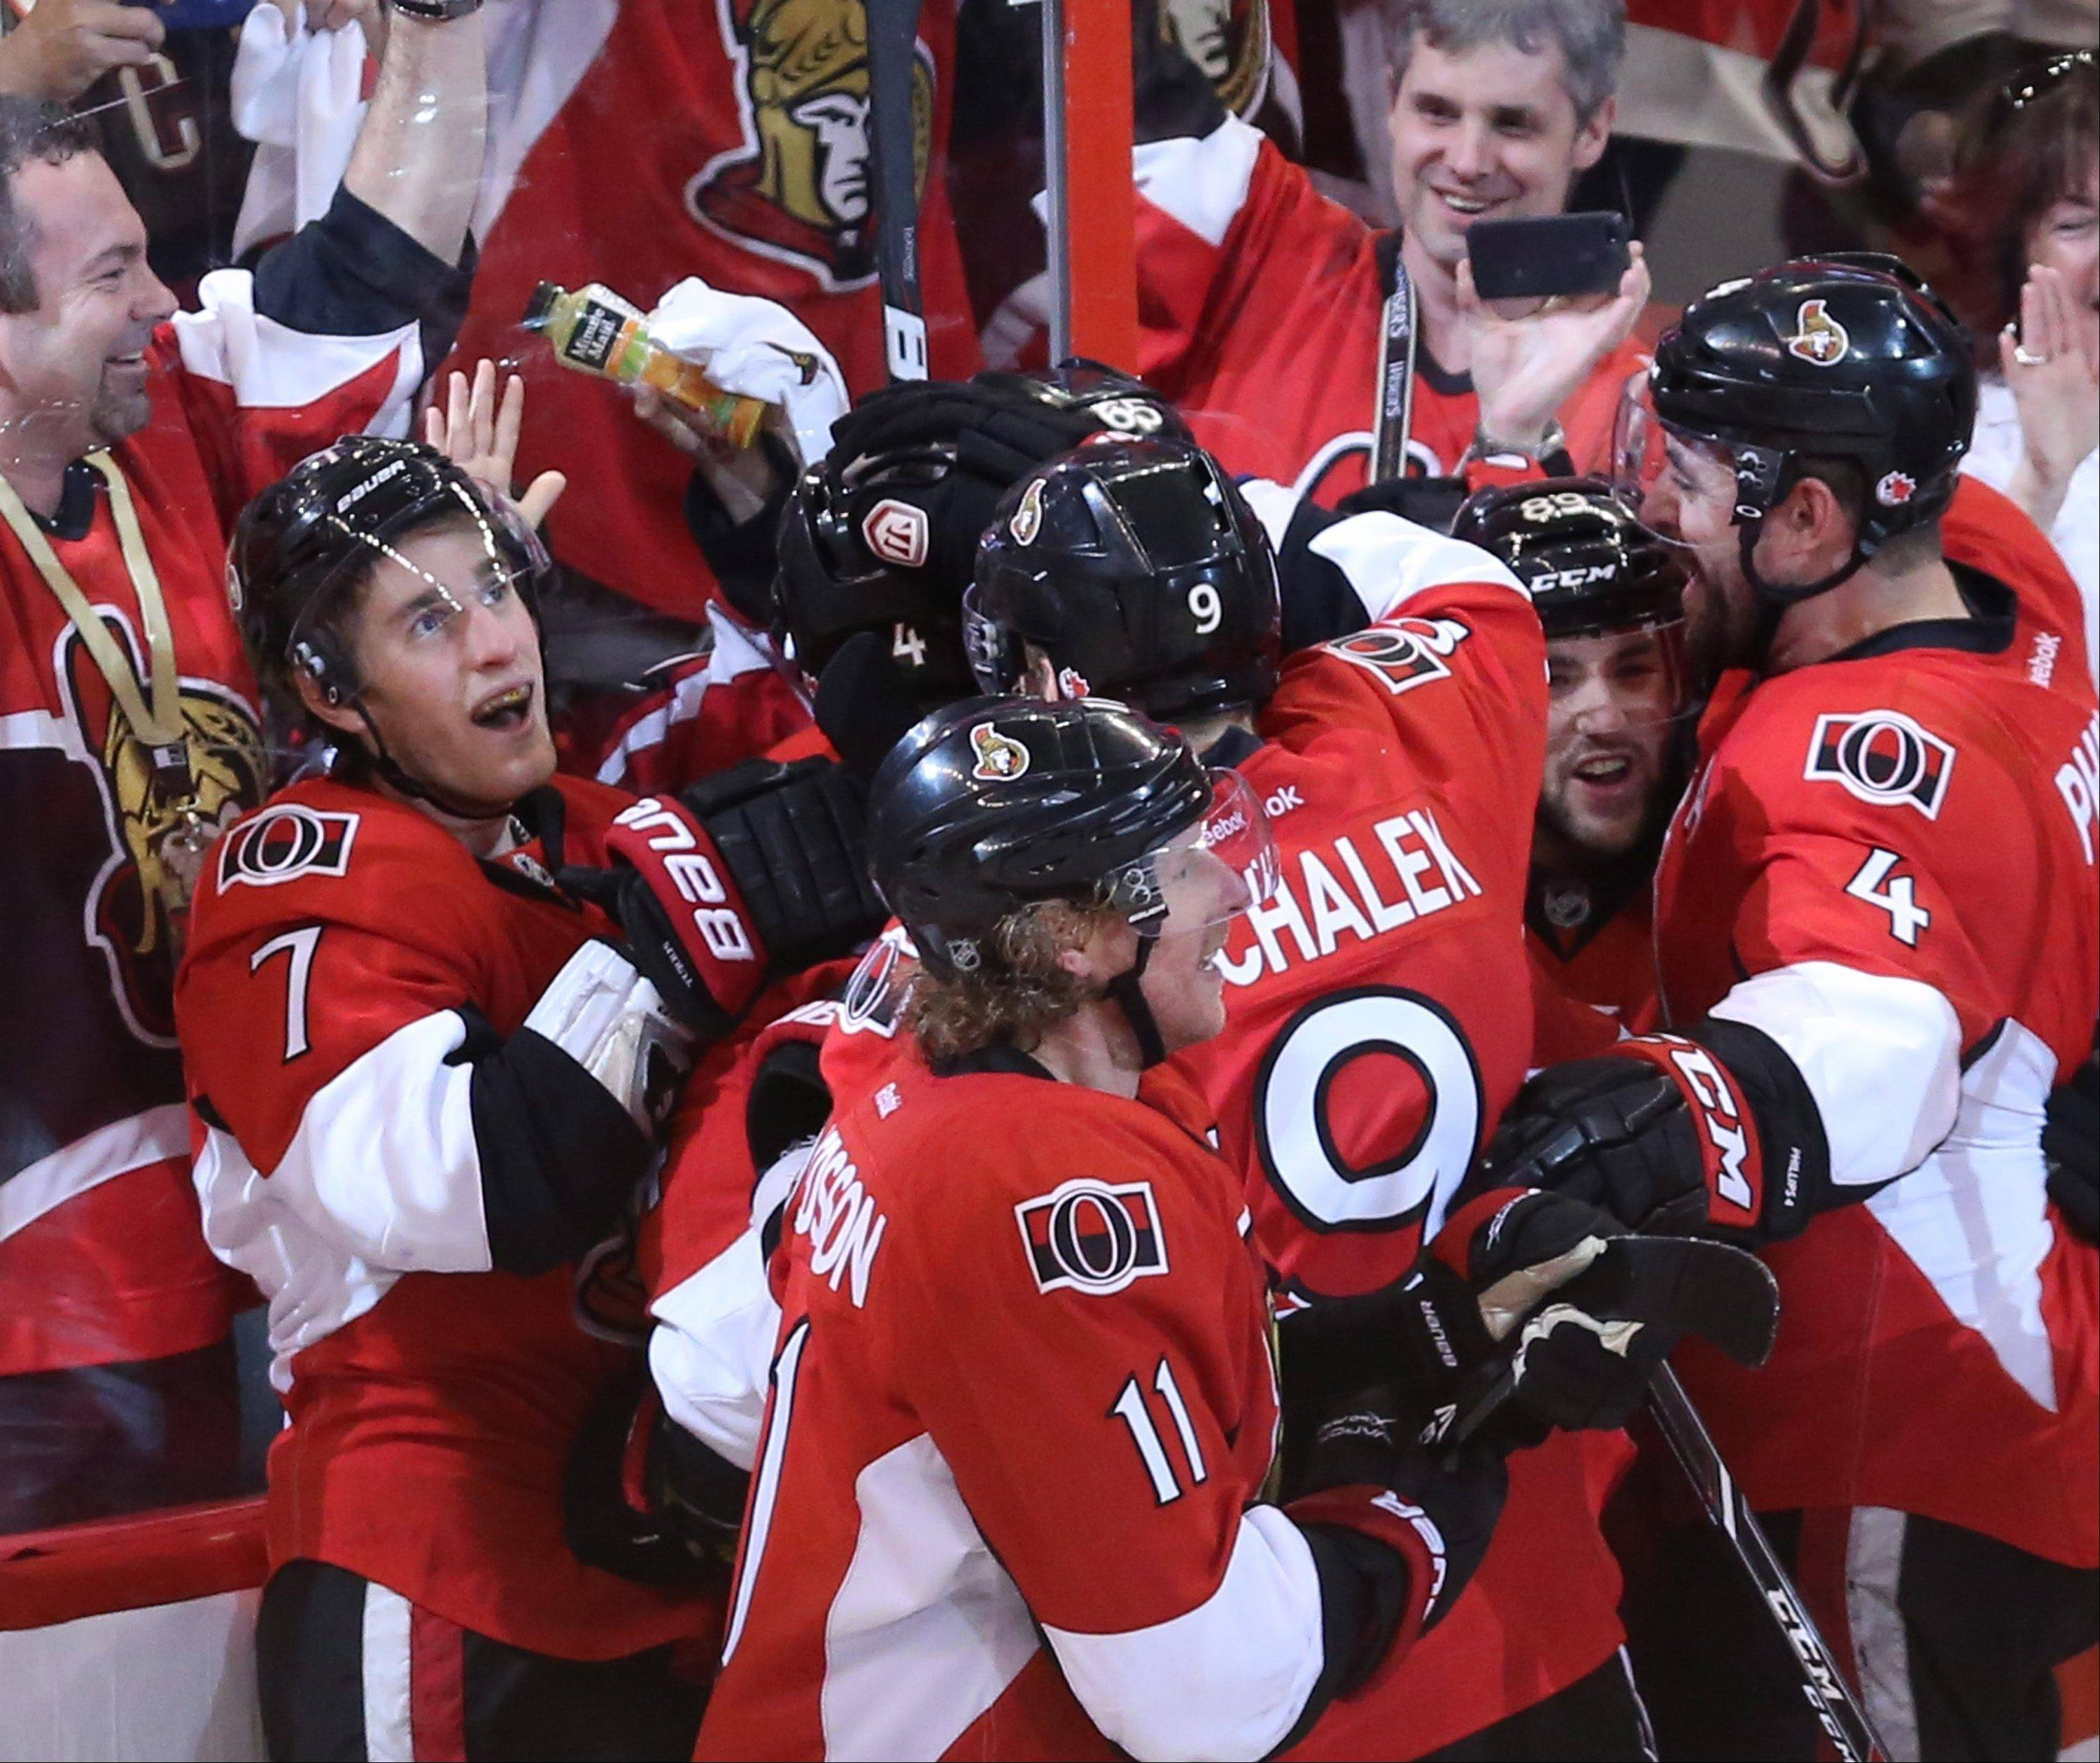 Ottawa Senators' Kyle Turris (7) and teammates celebrate a 3-2 overtime win against the Montreal Canadiens in Game 4 of an NHL hockey Stanley Cup playoff series in Ottawa, Ontario, on Tuesday, May 7, 2013. (AP Photo/The Canadian Press, Fred Chartrand)